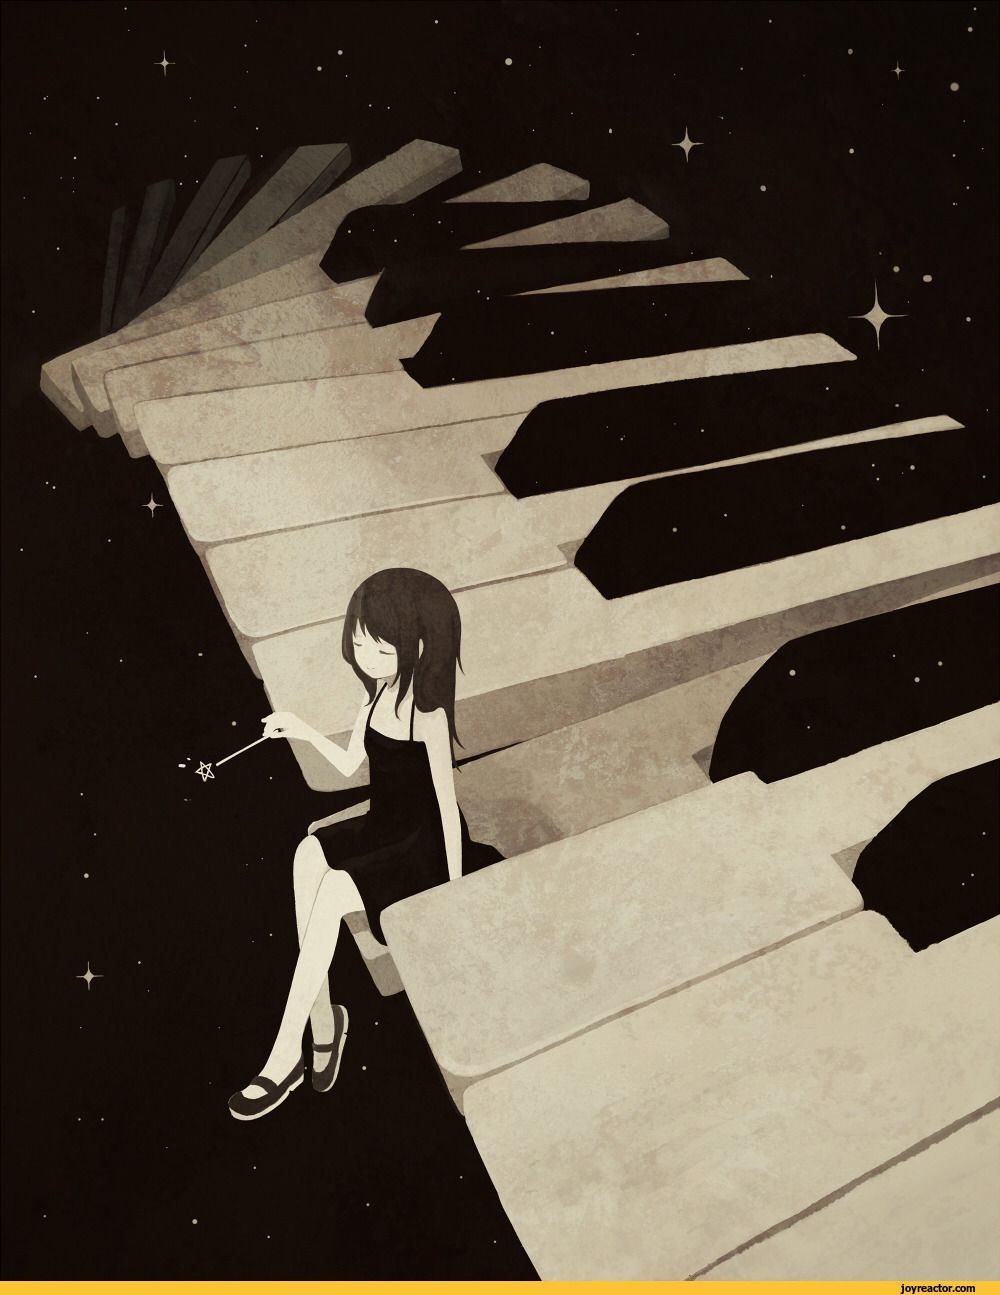 anime-art-girl-piano-10.jpeg (10×10)  Piano art, Anime